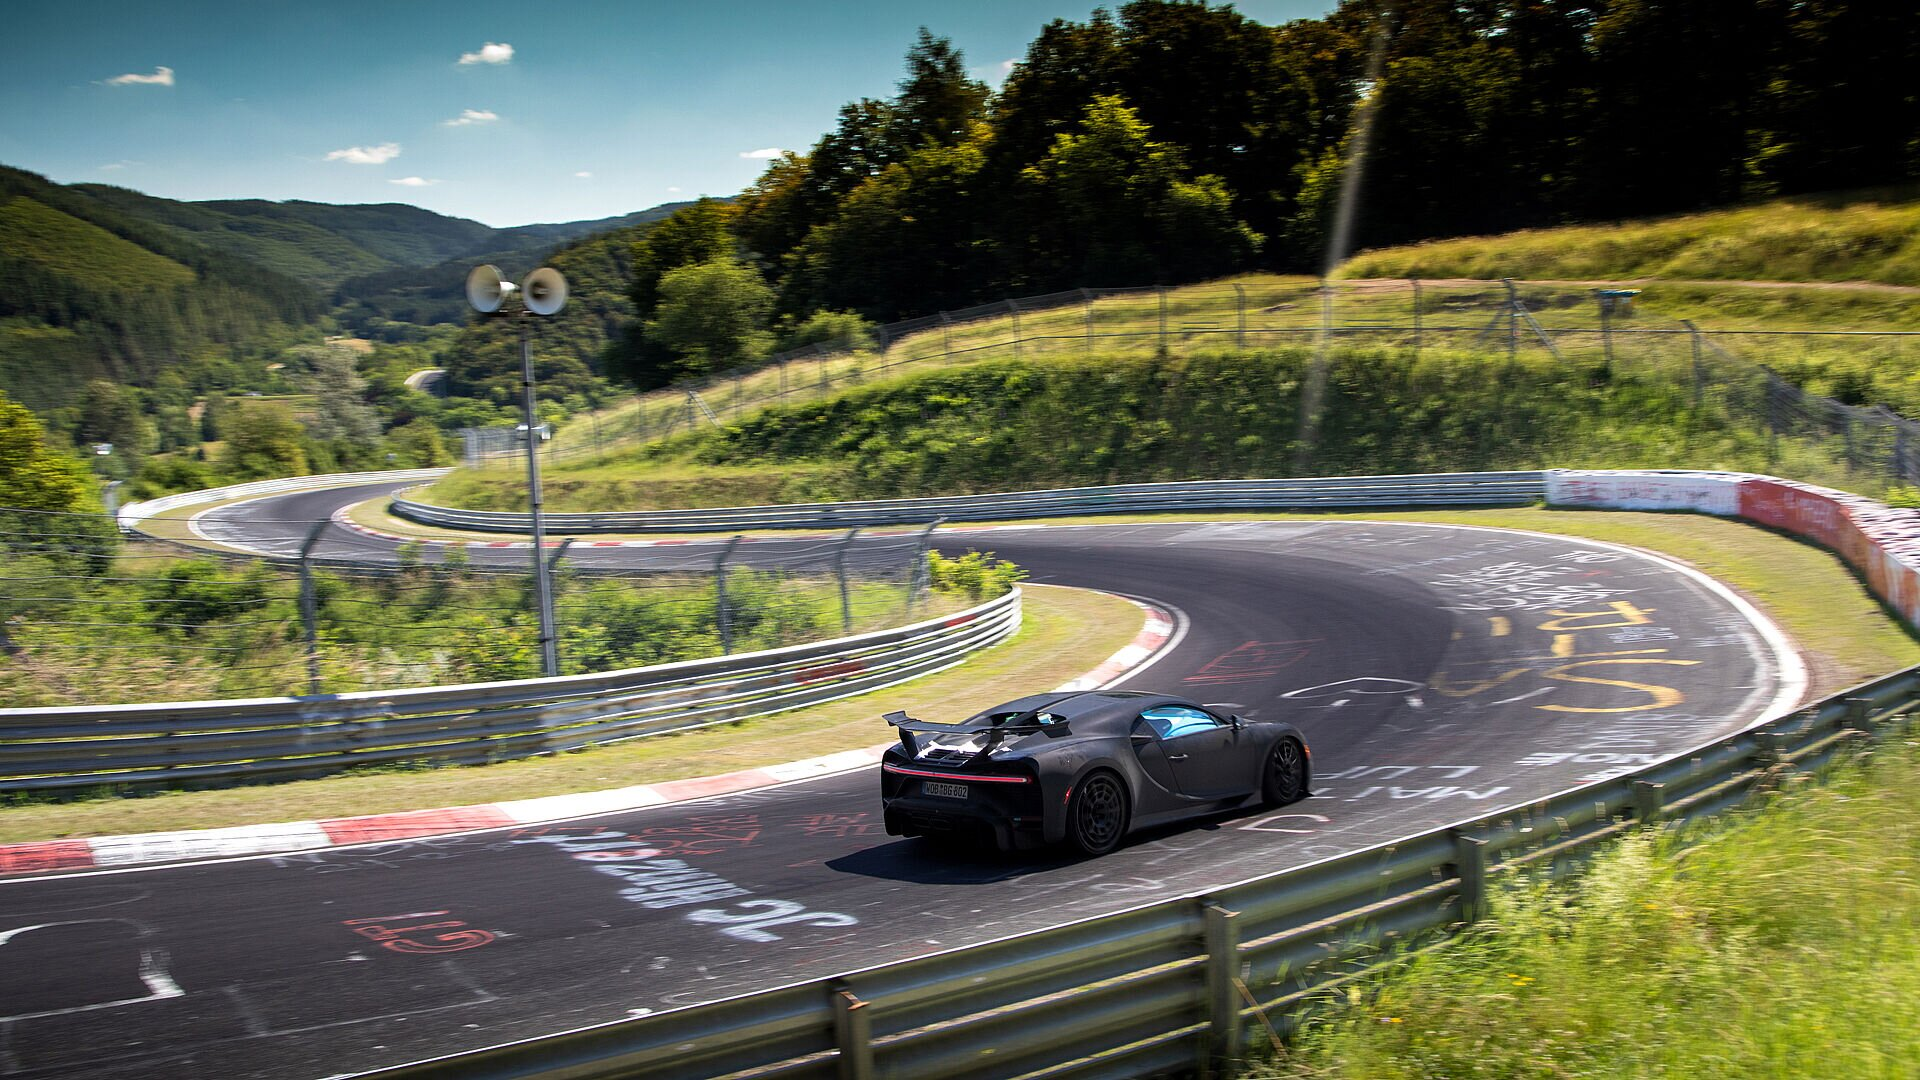 Chiron Pur Sport – final handling tests on the Nordschleife - Image 3